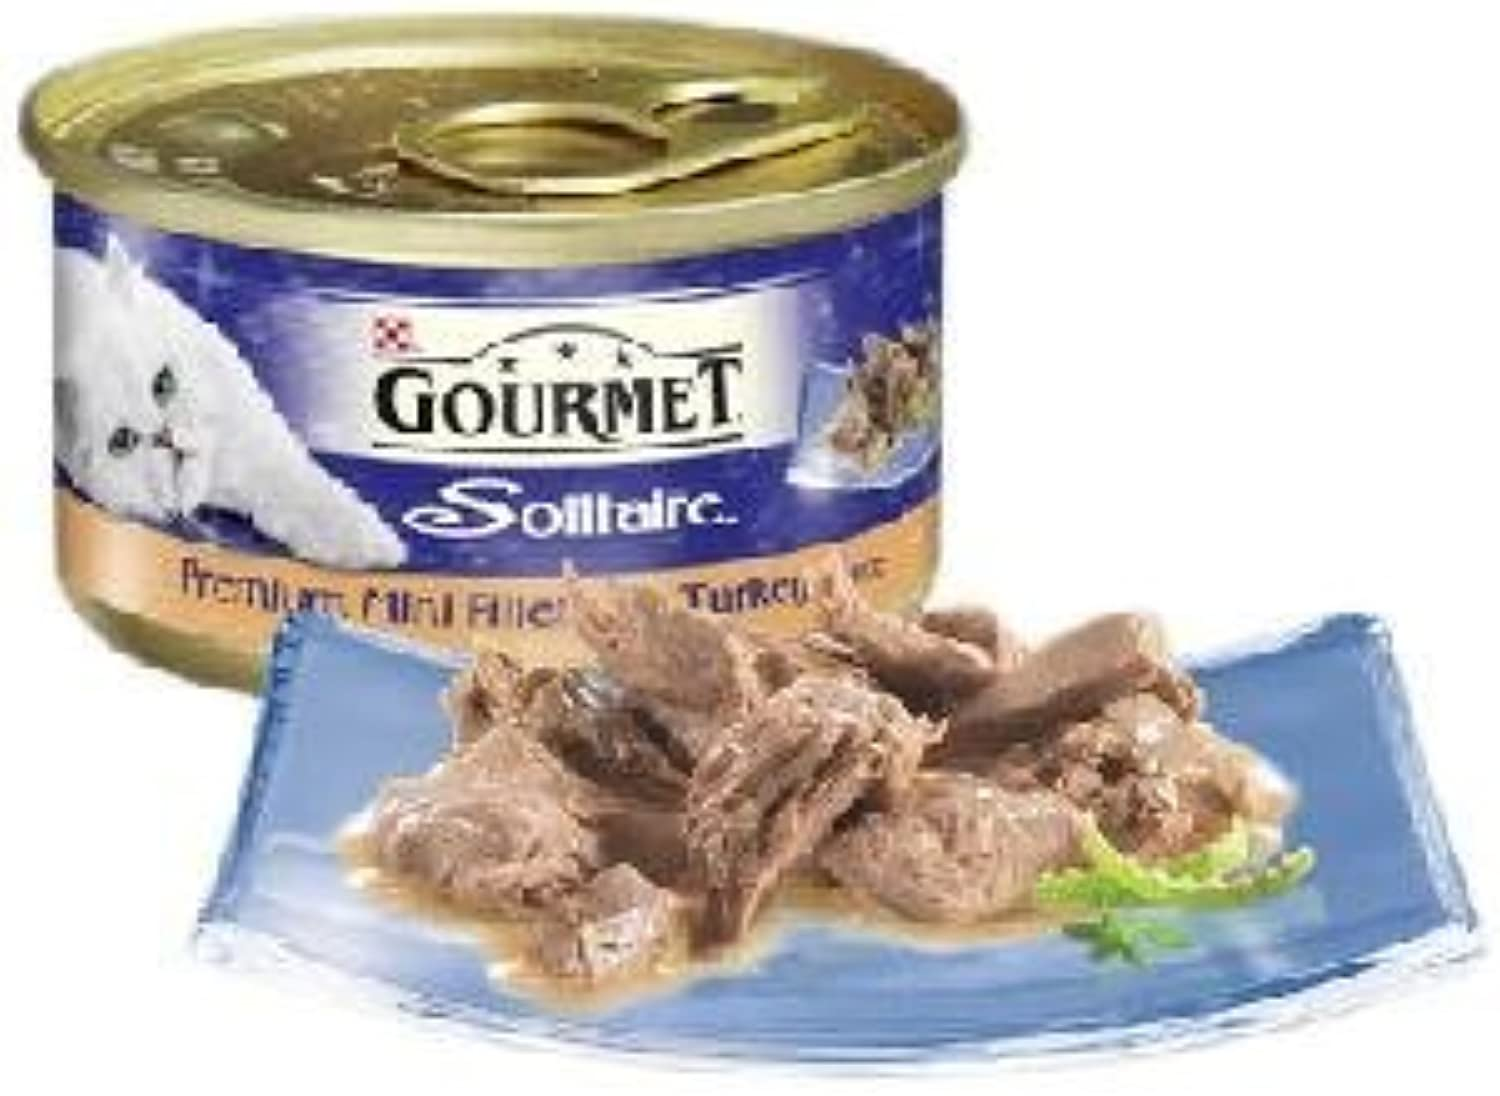 Gourmet Solitaire Can Premium Fillets with Turkey in Sauce 85g